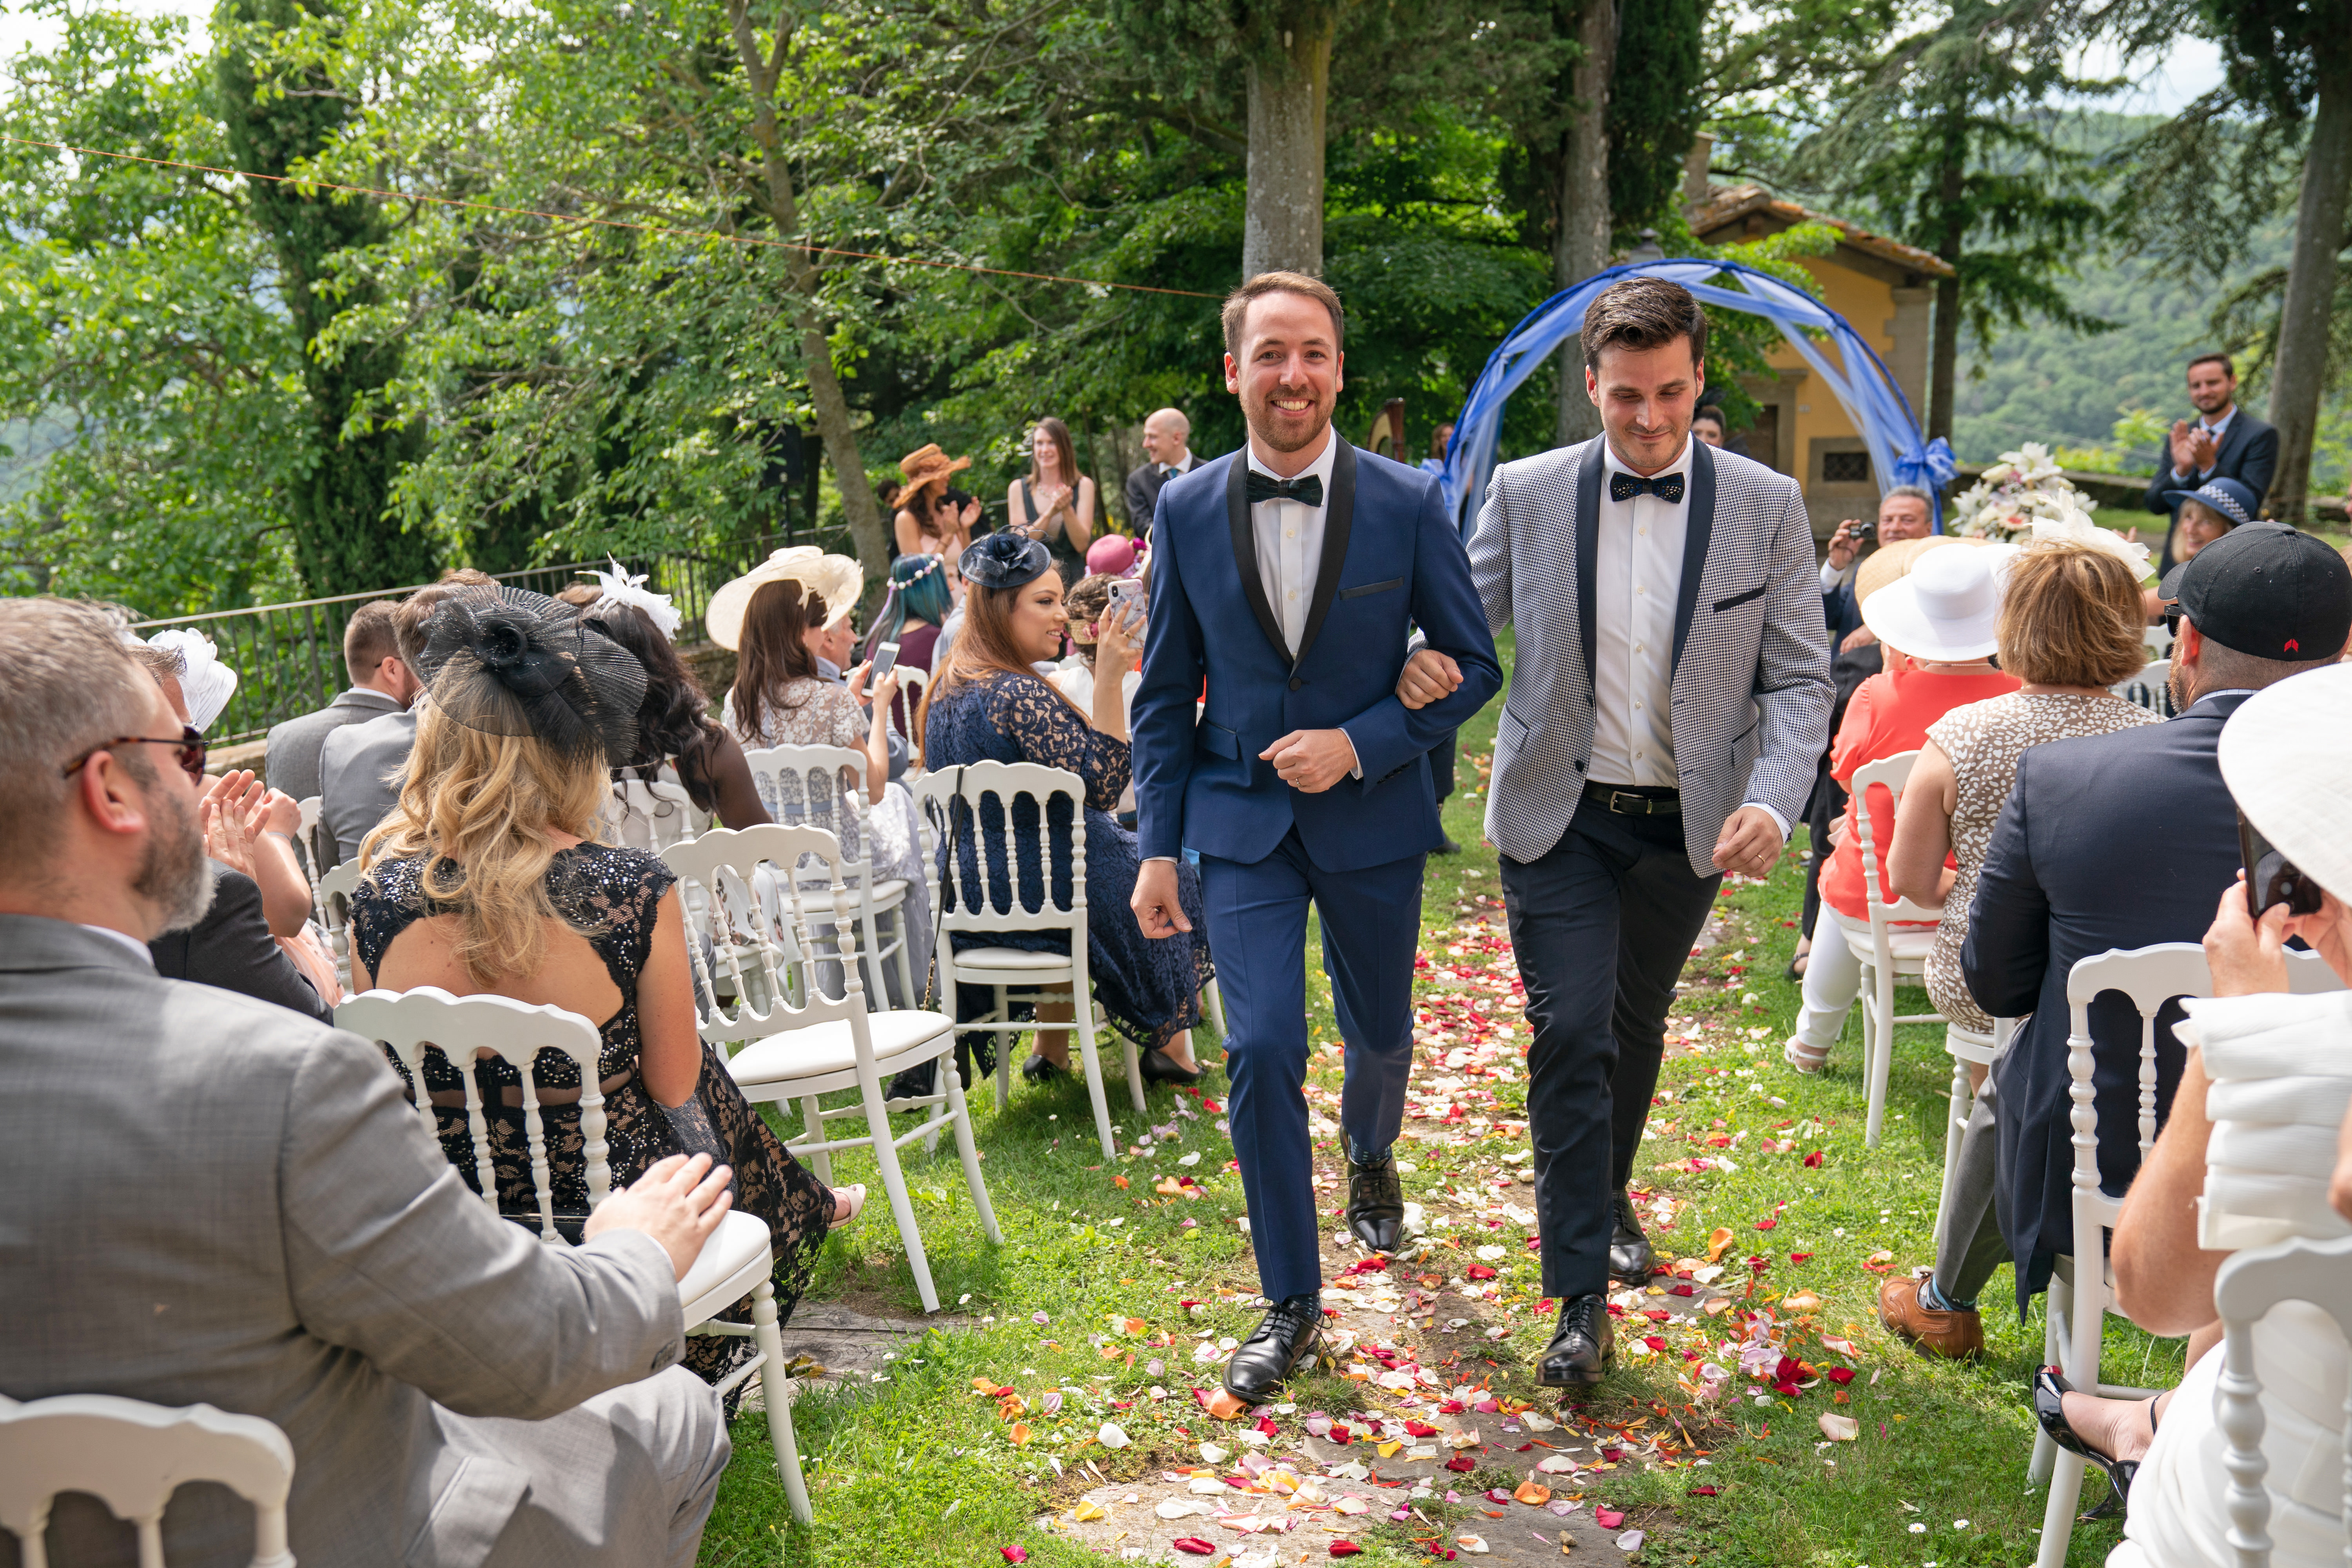 Same-Sex Wedding Photographer Florence: Timur & Guillaume. Couple move together after the ceremony